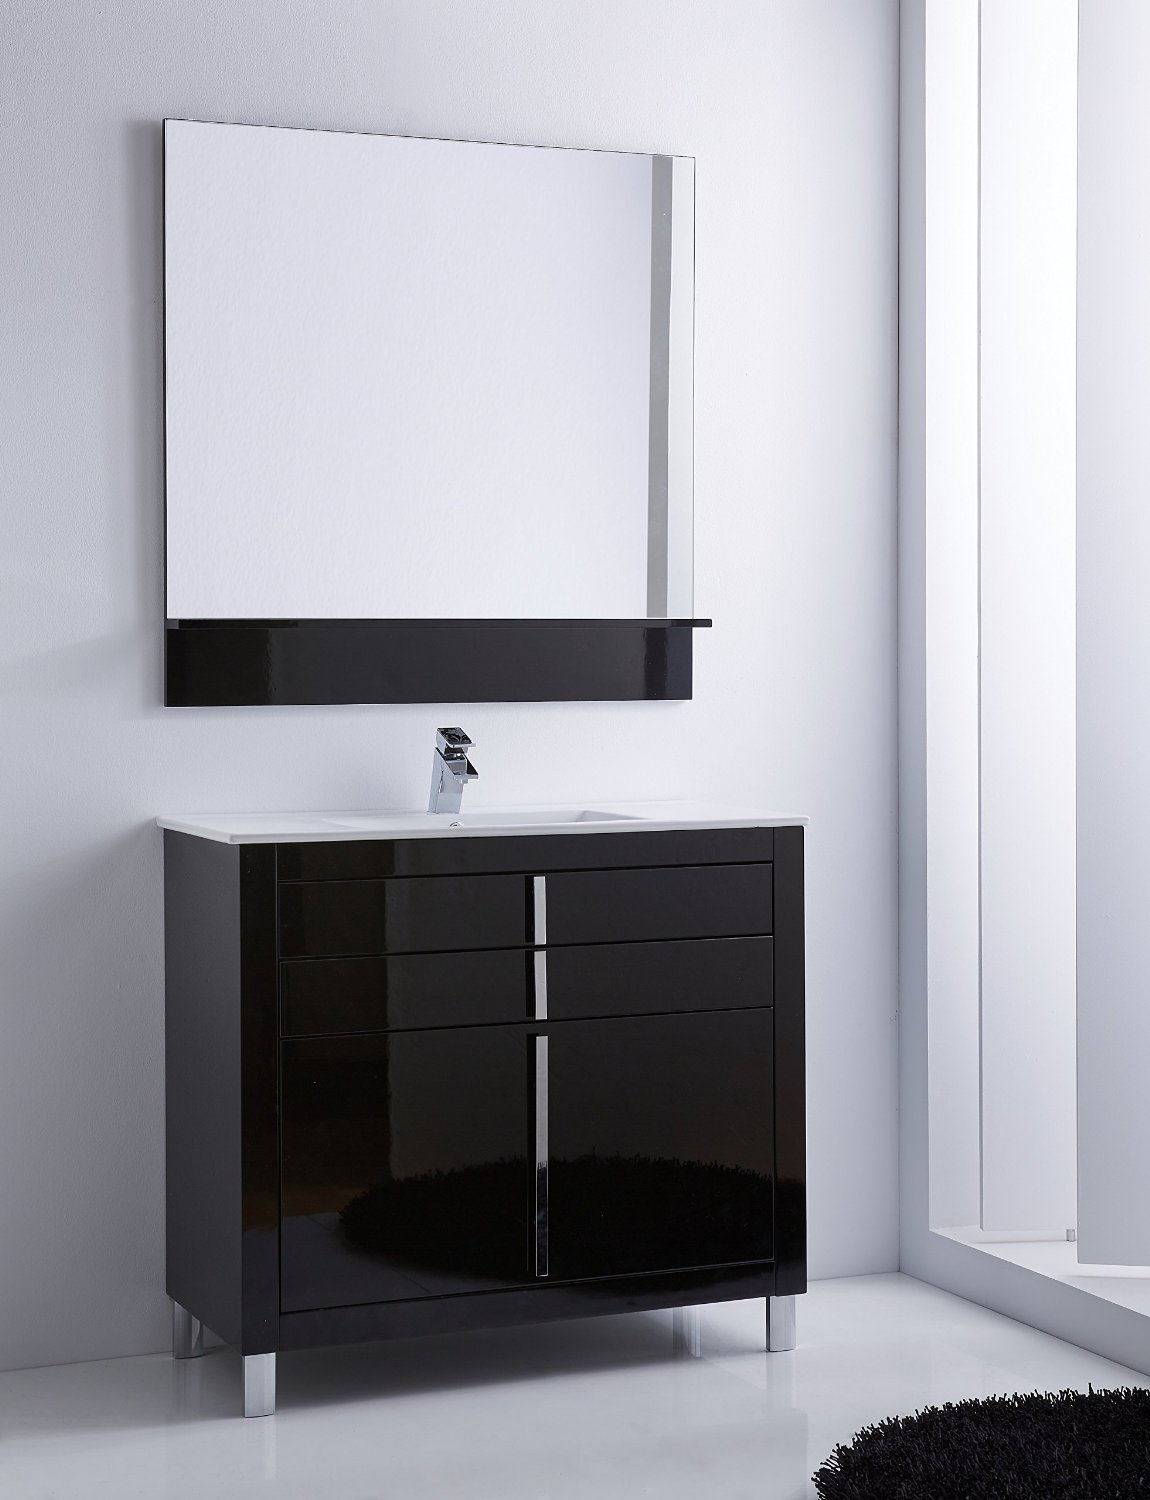 Cheap Sink Console, find Sink Console deals on line at Alibaba.com